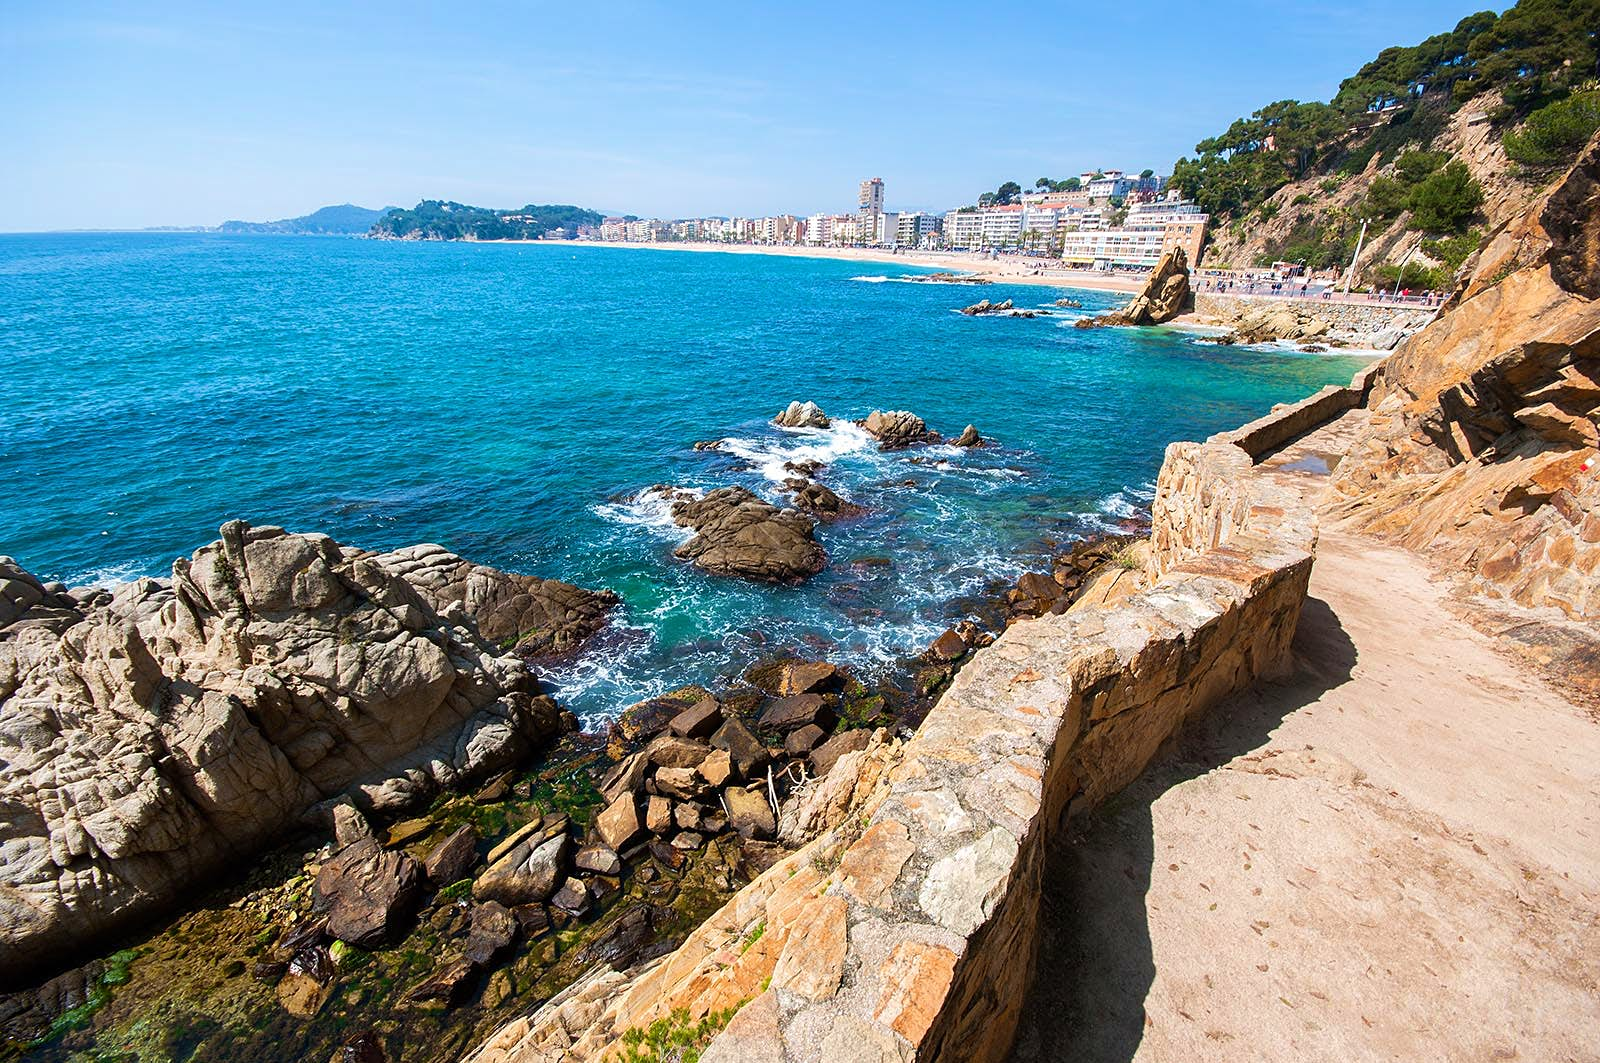 Lloret de Mar seen from the famous 'Camí de Ronda' along the Costa Brava in Catalonia, Spain.